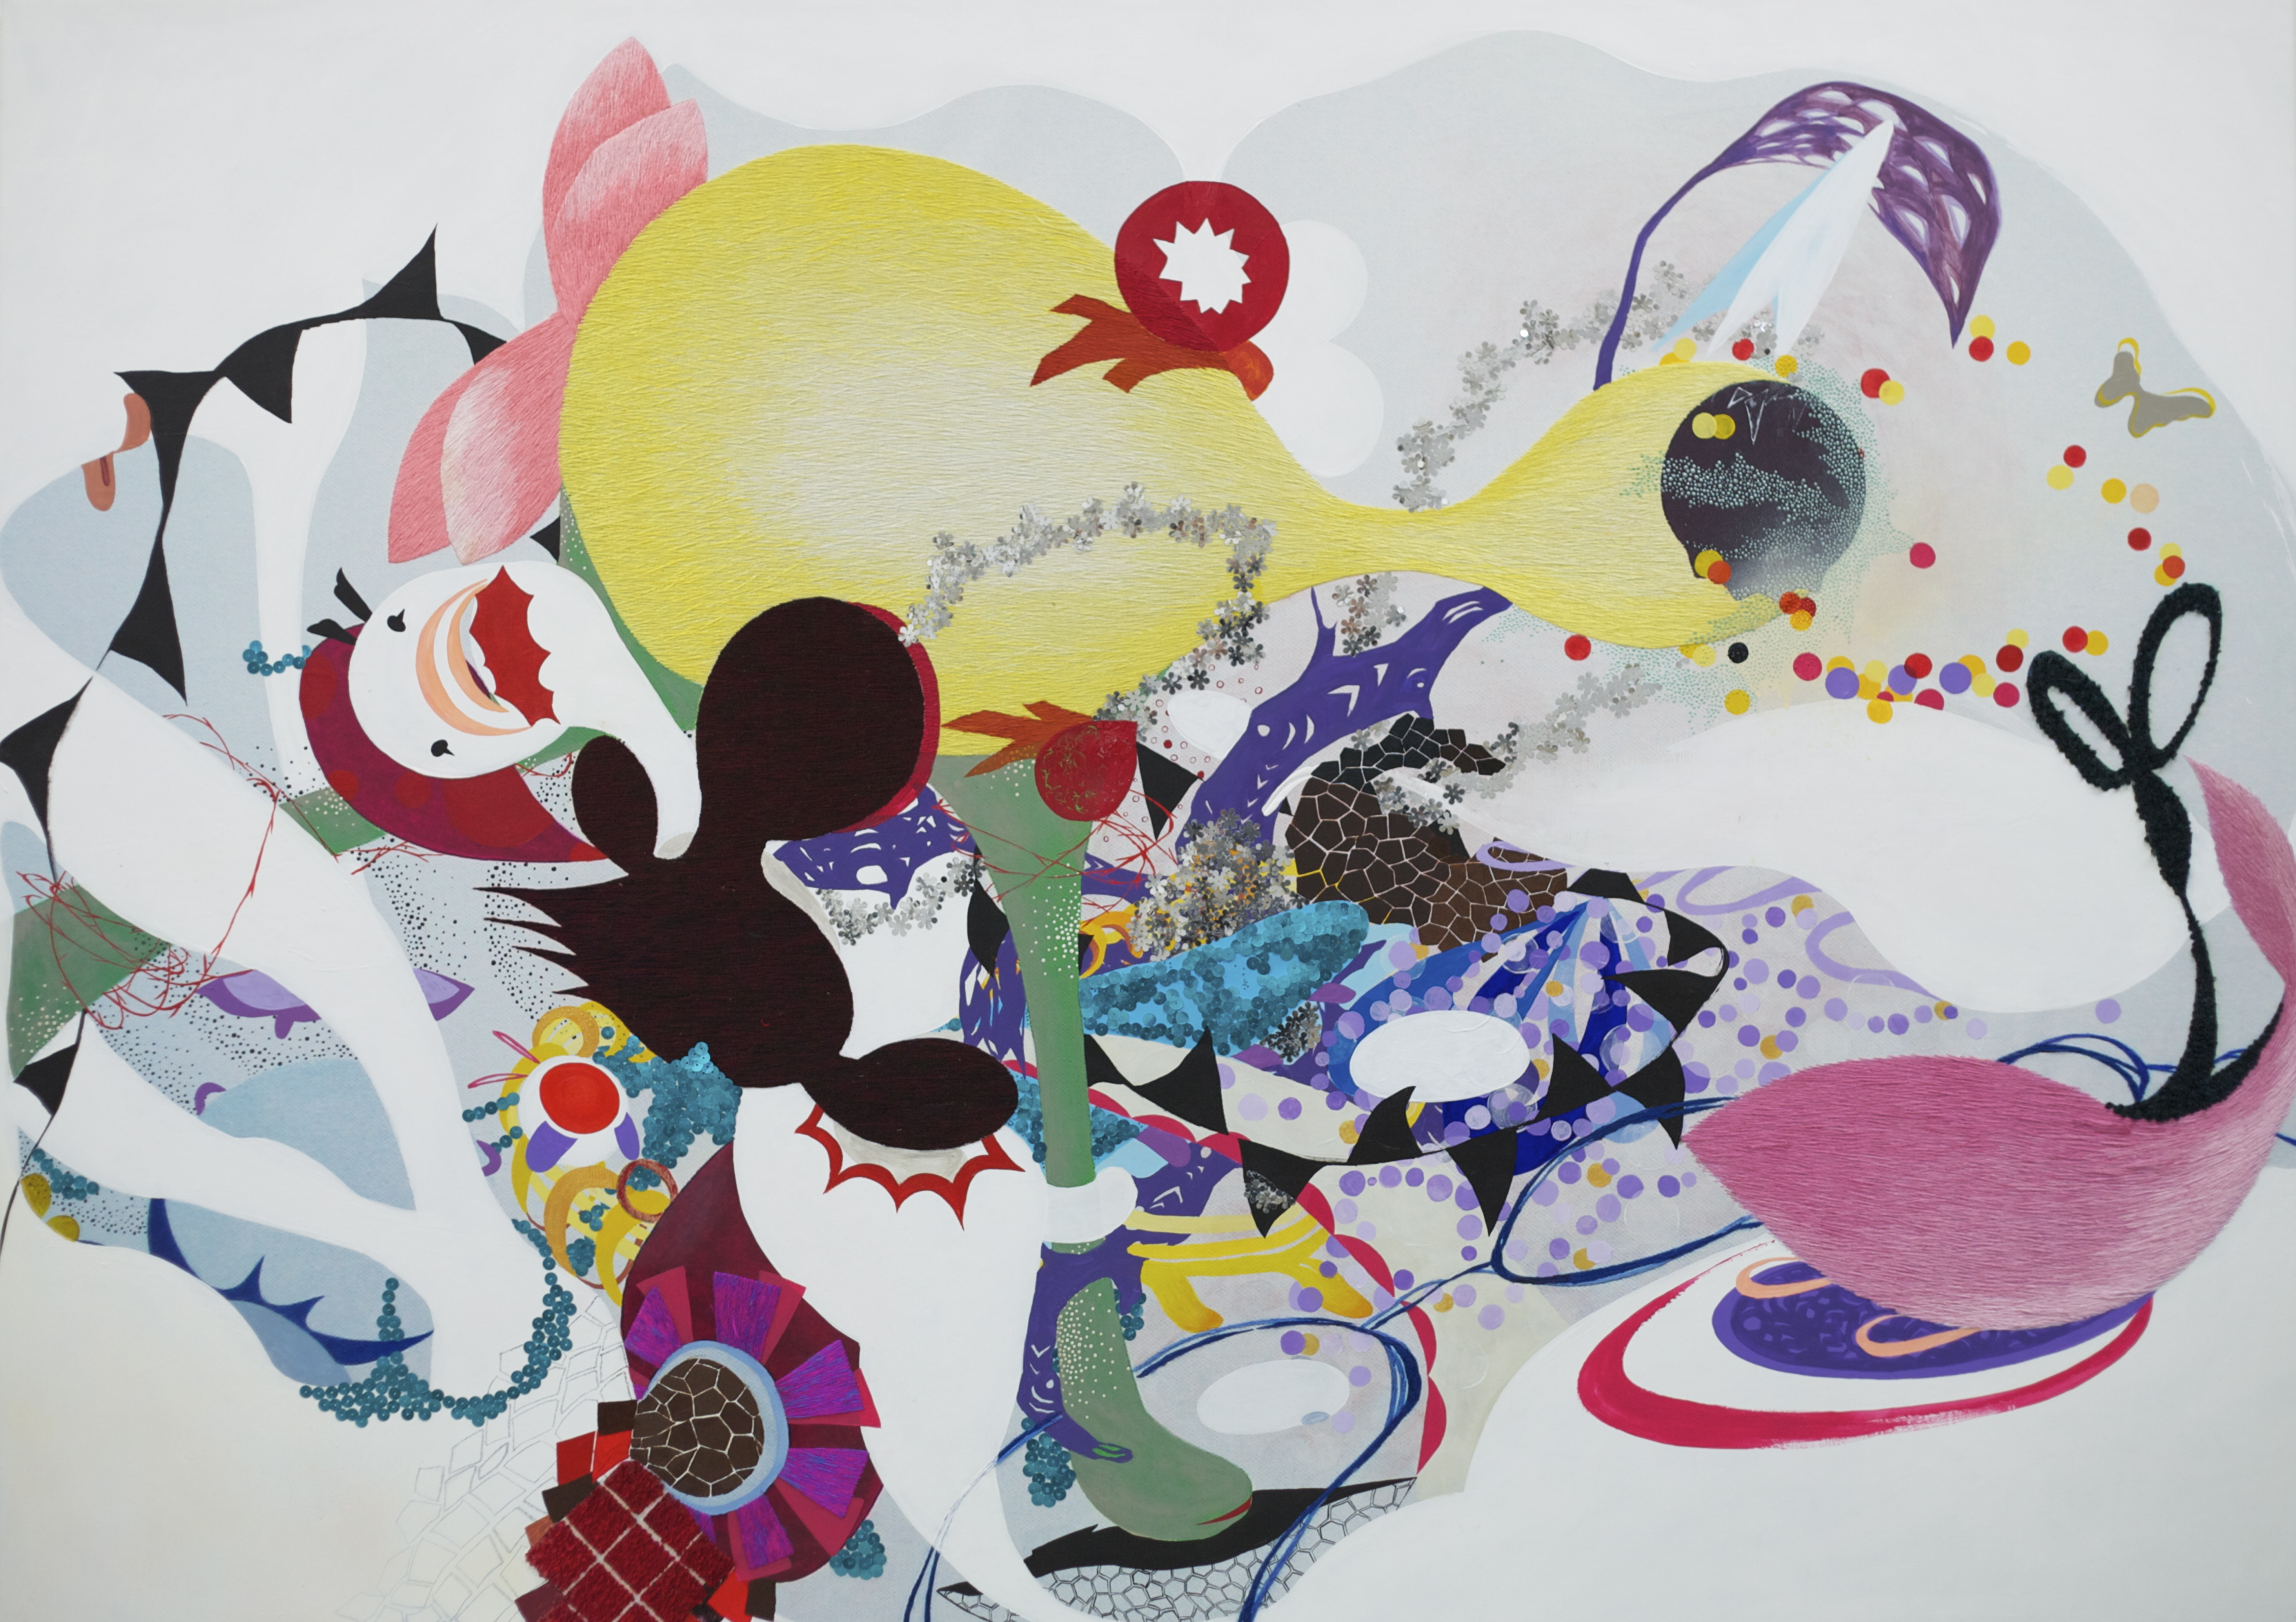 I Run to You, 2010-2012, Acrylic and embellishment on canvas, 102x142cm